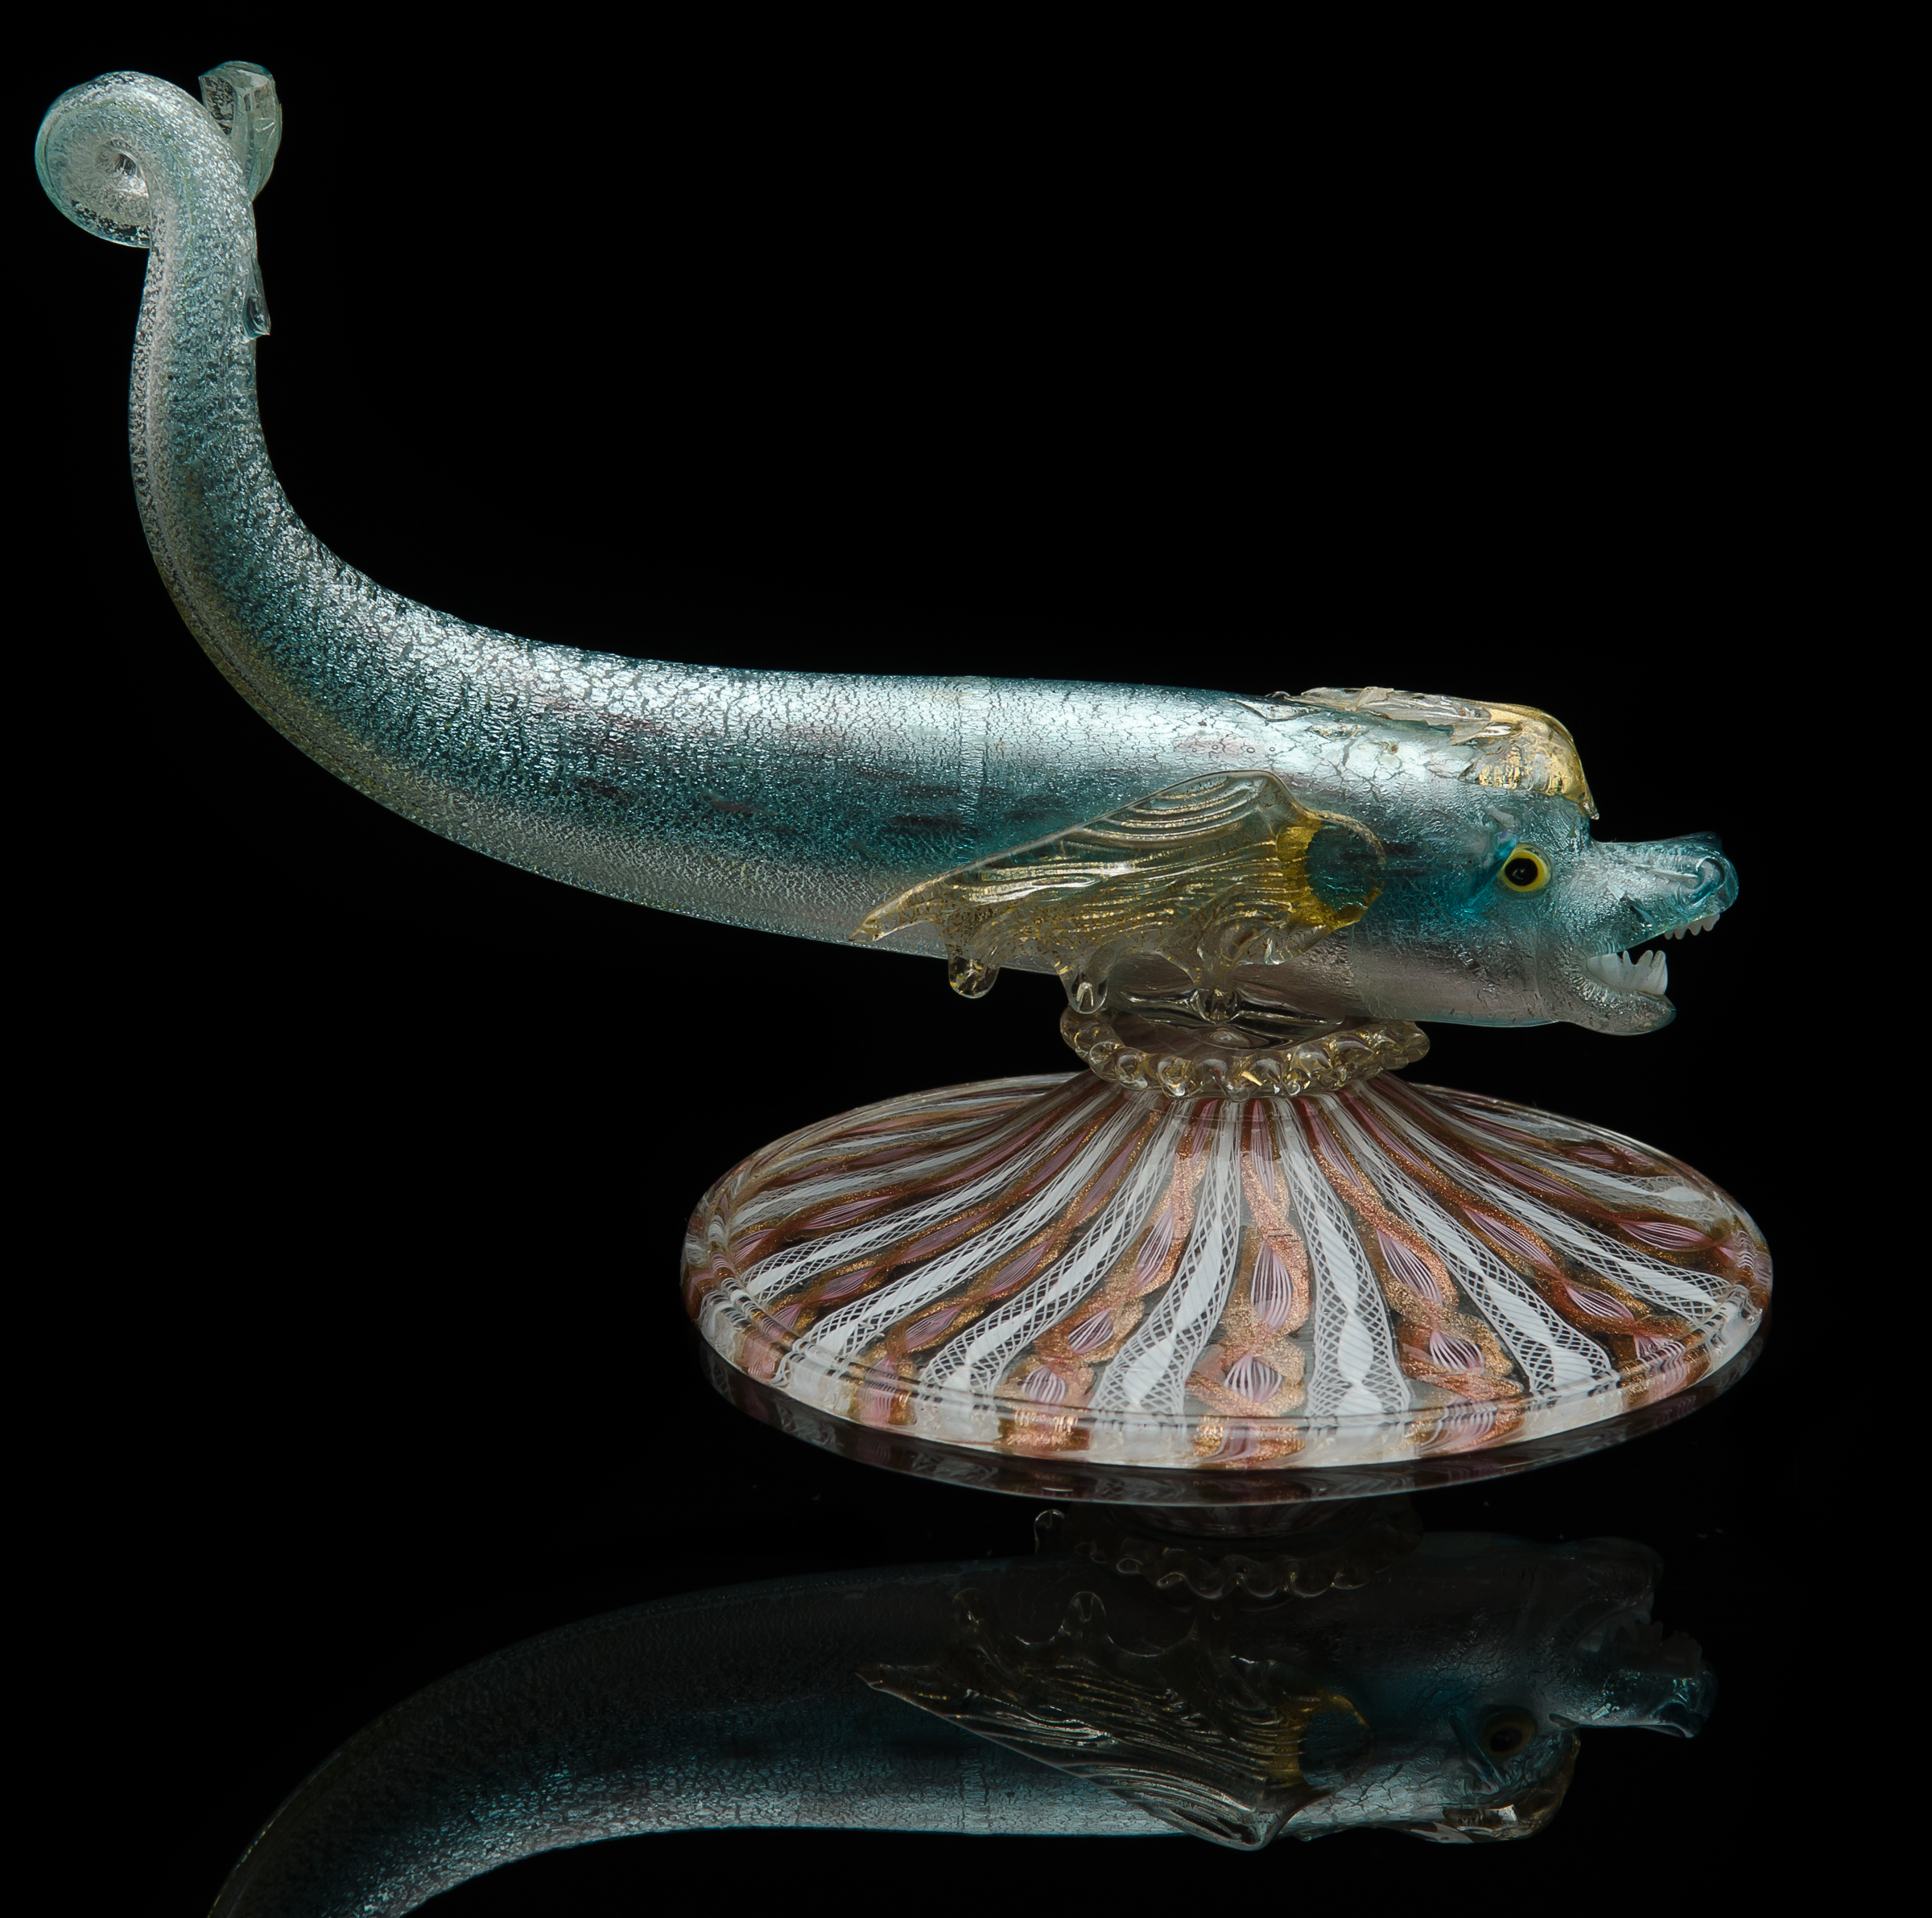 Salviati and Company,  Mythological Fish with Teeth on Vetro a Retorti Base  (1880, glass, 6 inches), VV.90